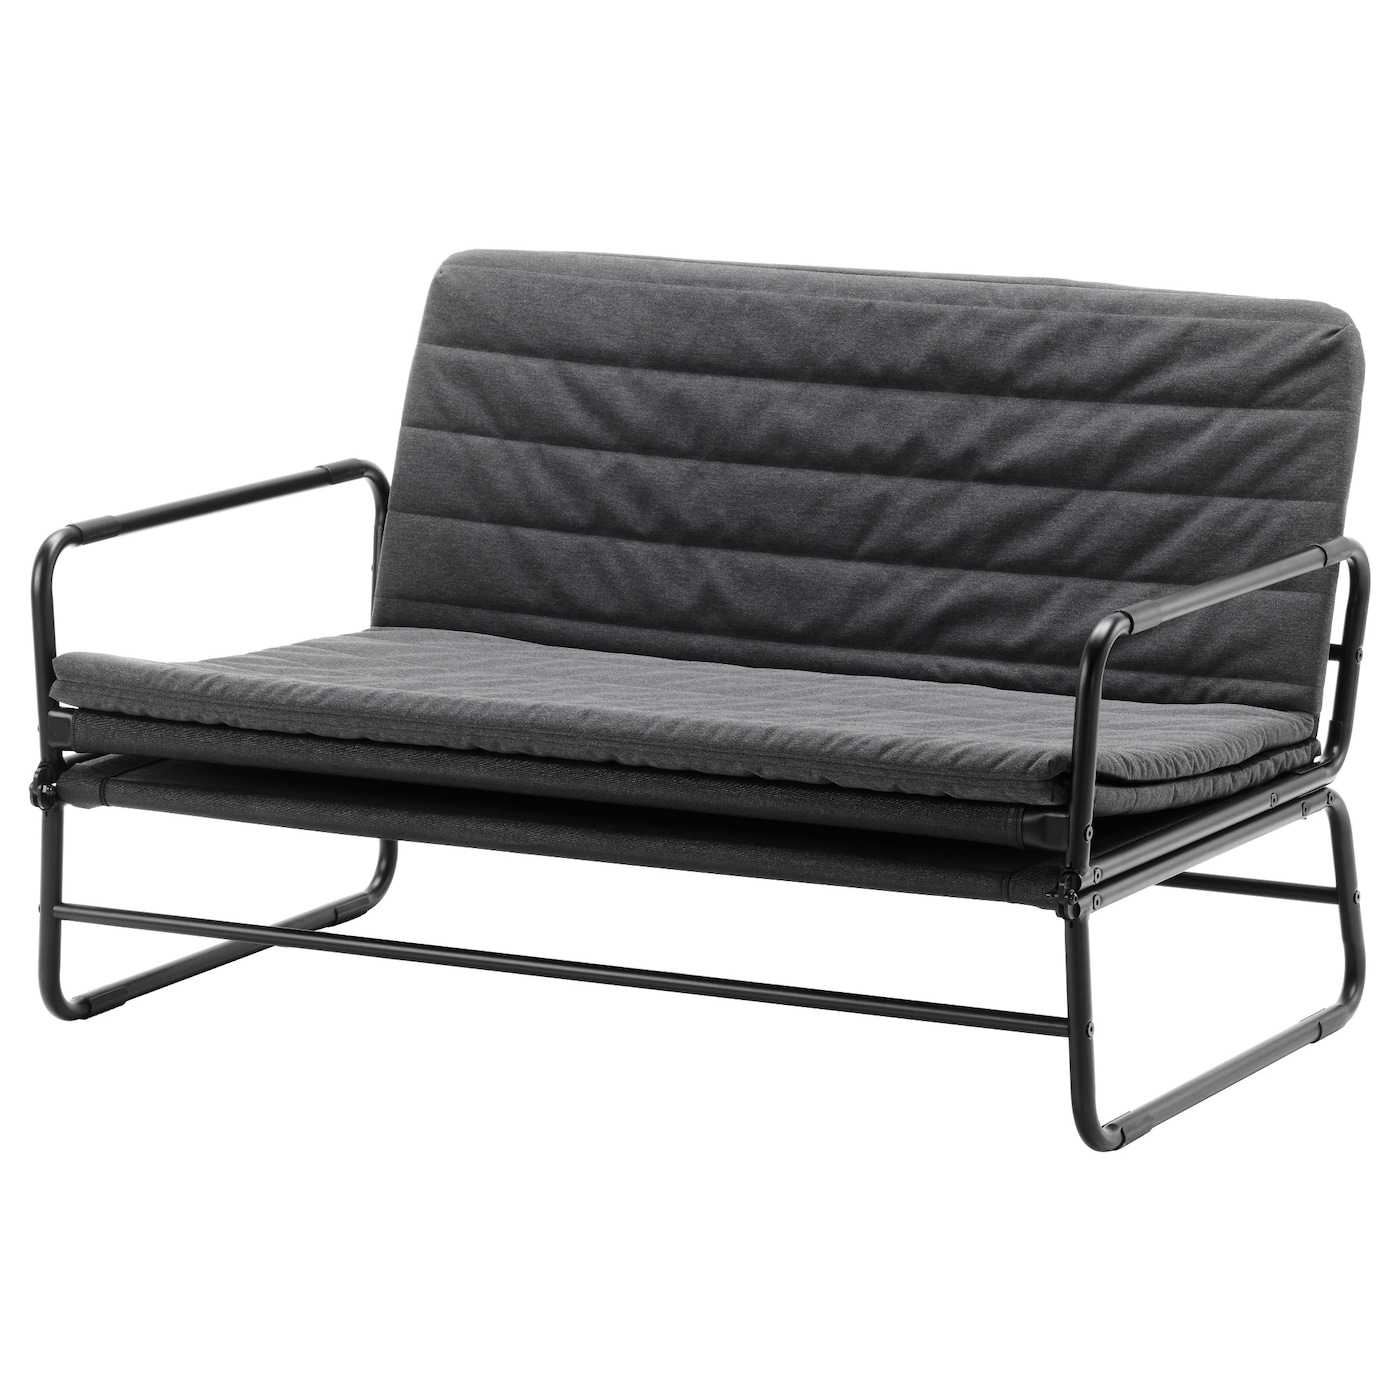 Hammarn sofa bed knisa dark grey black 120 cm ikea for Divan and mattress